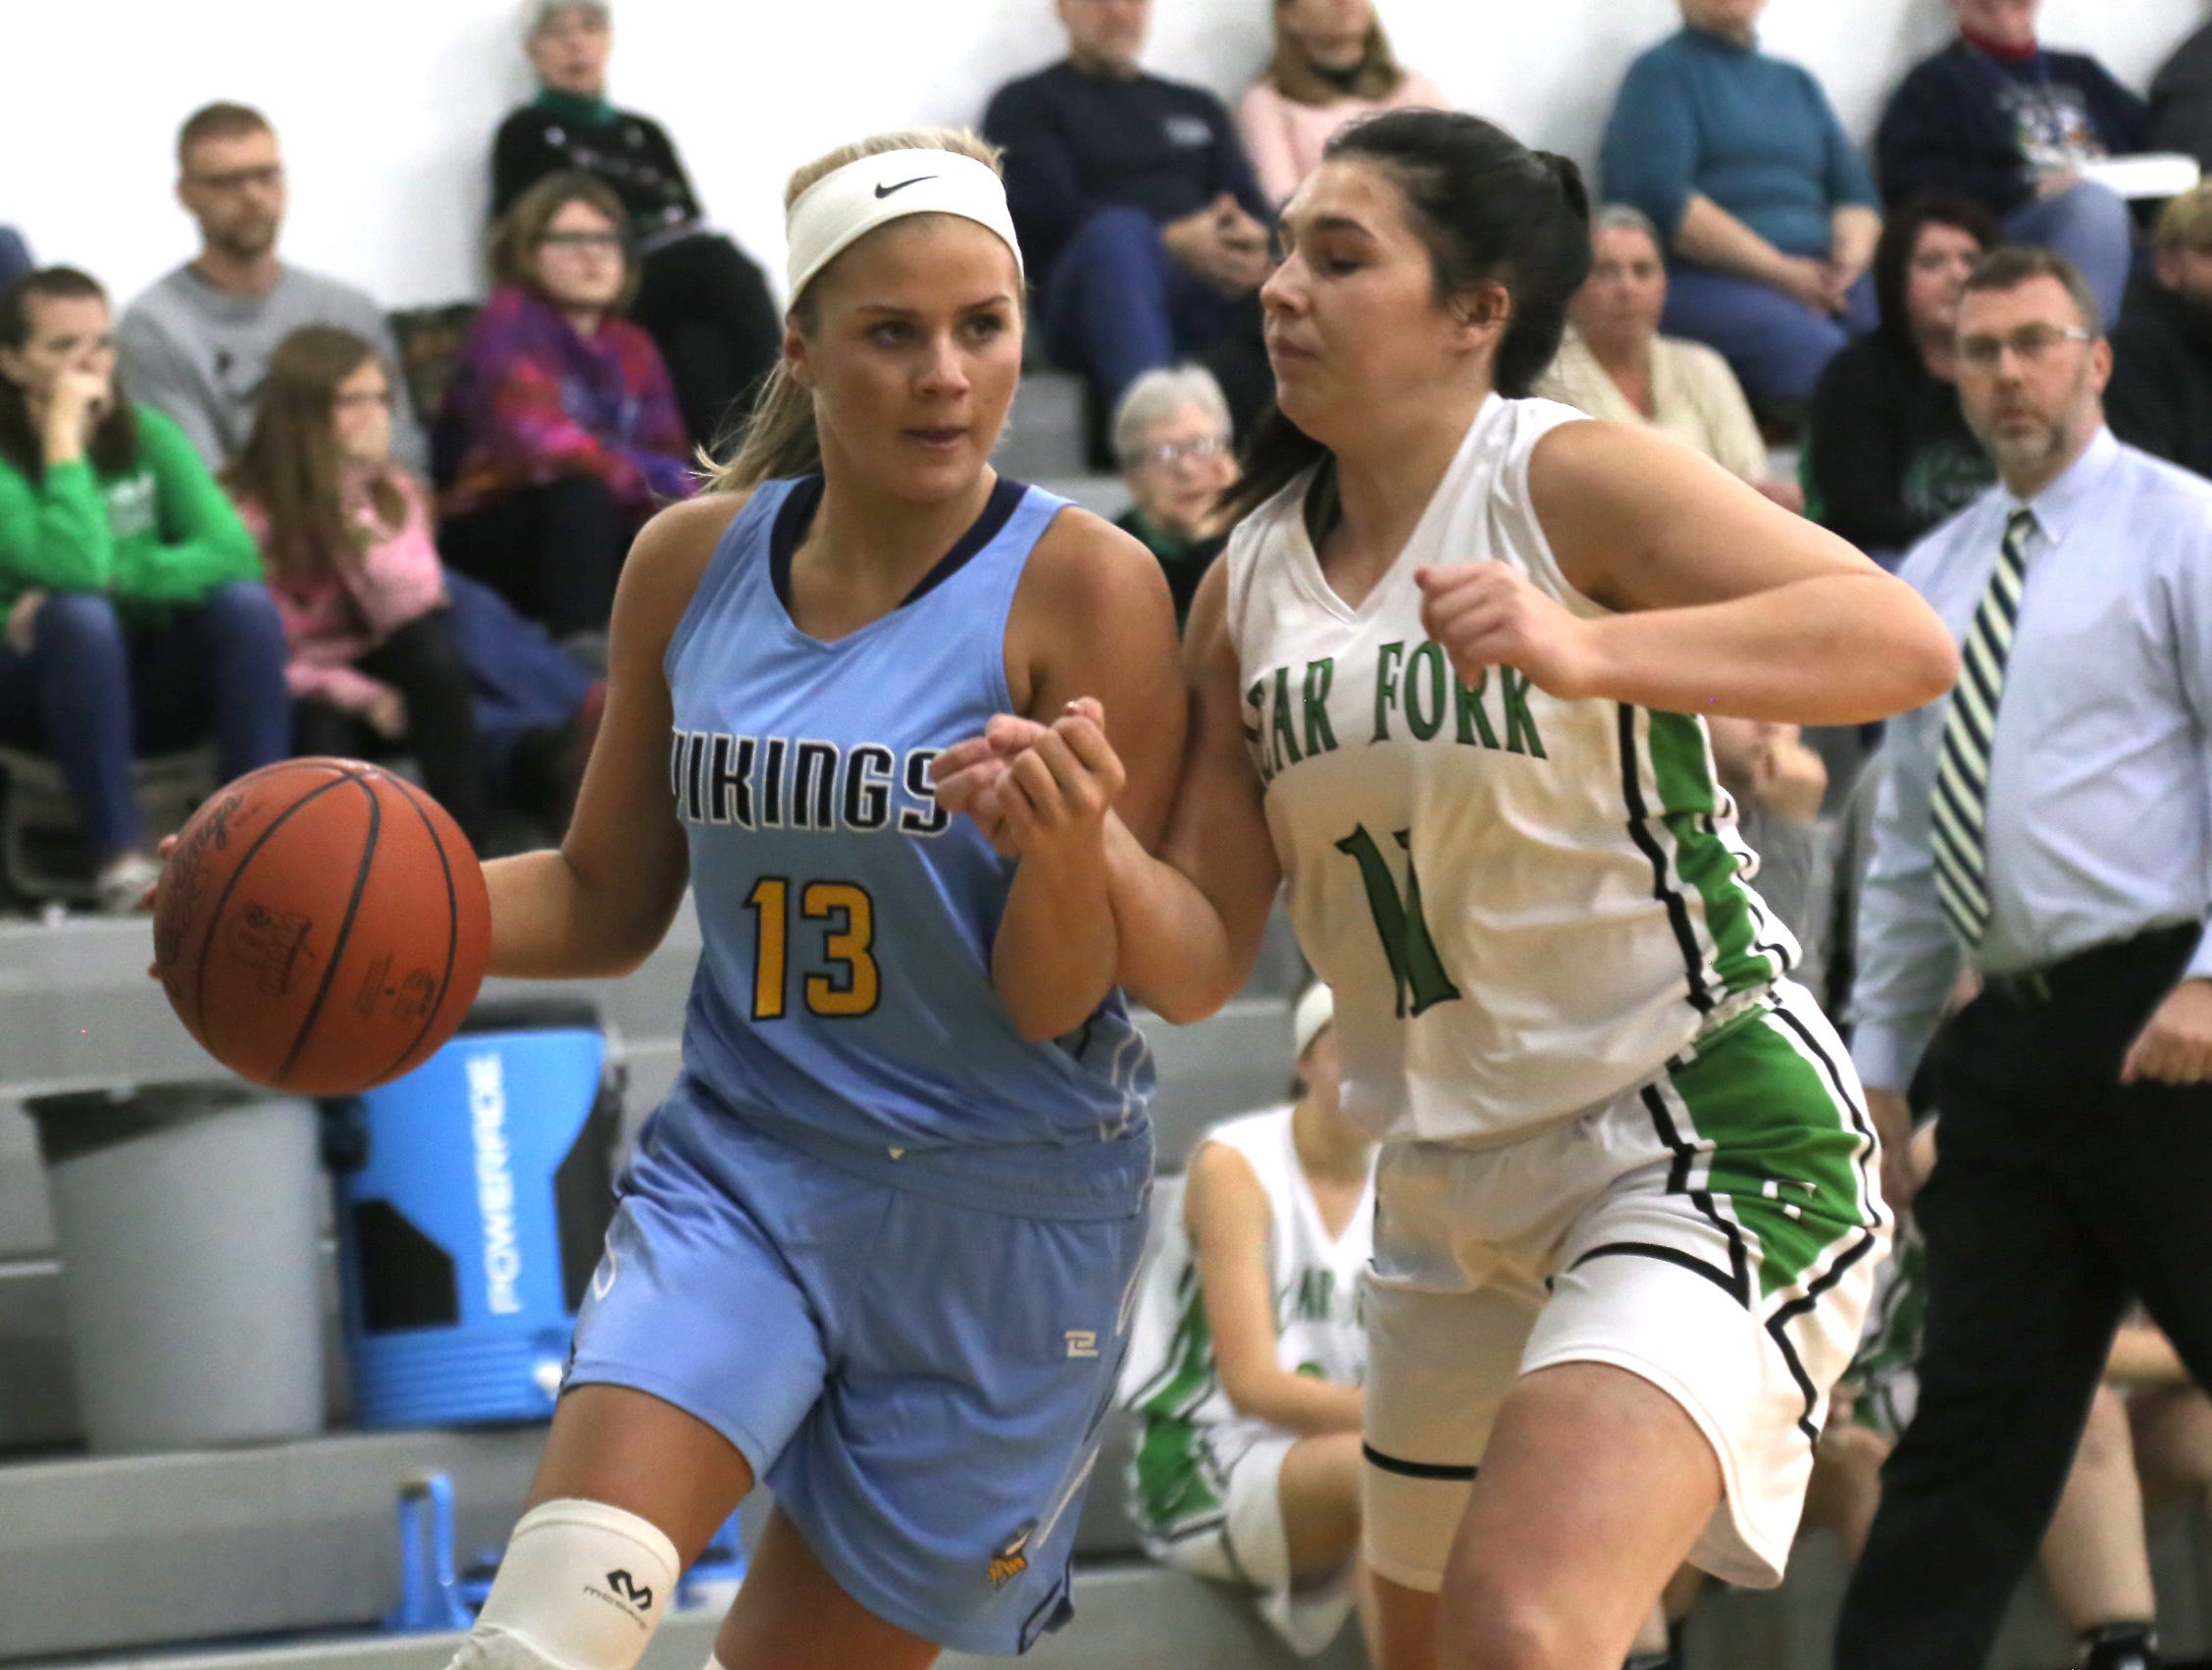 River Valley's Ally Johnson dribbles the ball against Clear Fork's Reagan Marshall on Tuesday.